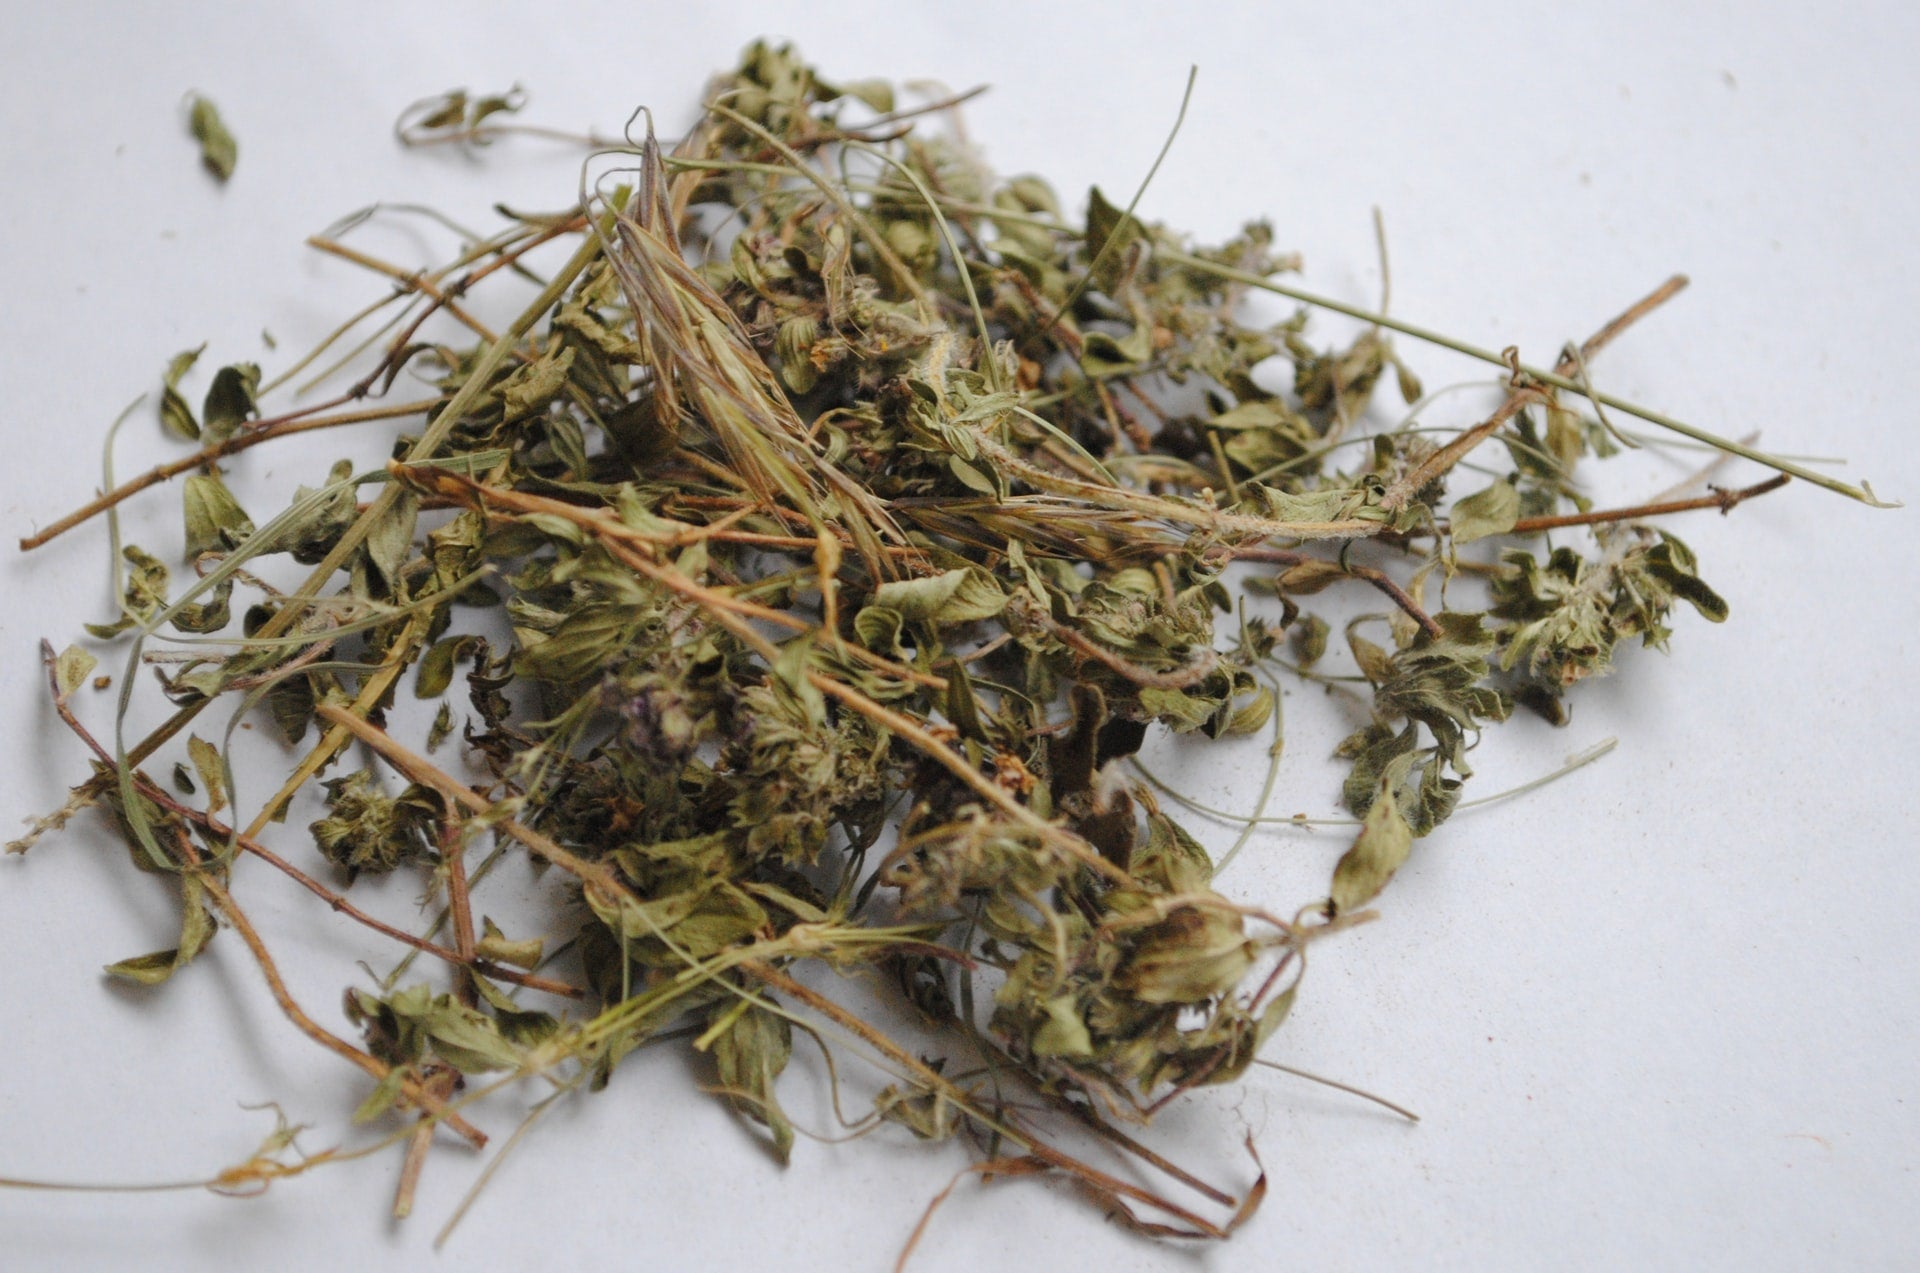 Dry Herbs and Tobacco